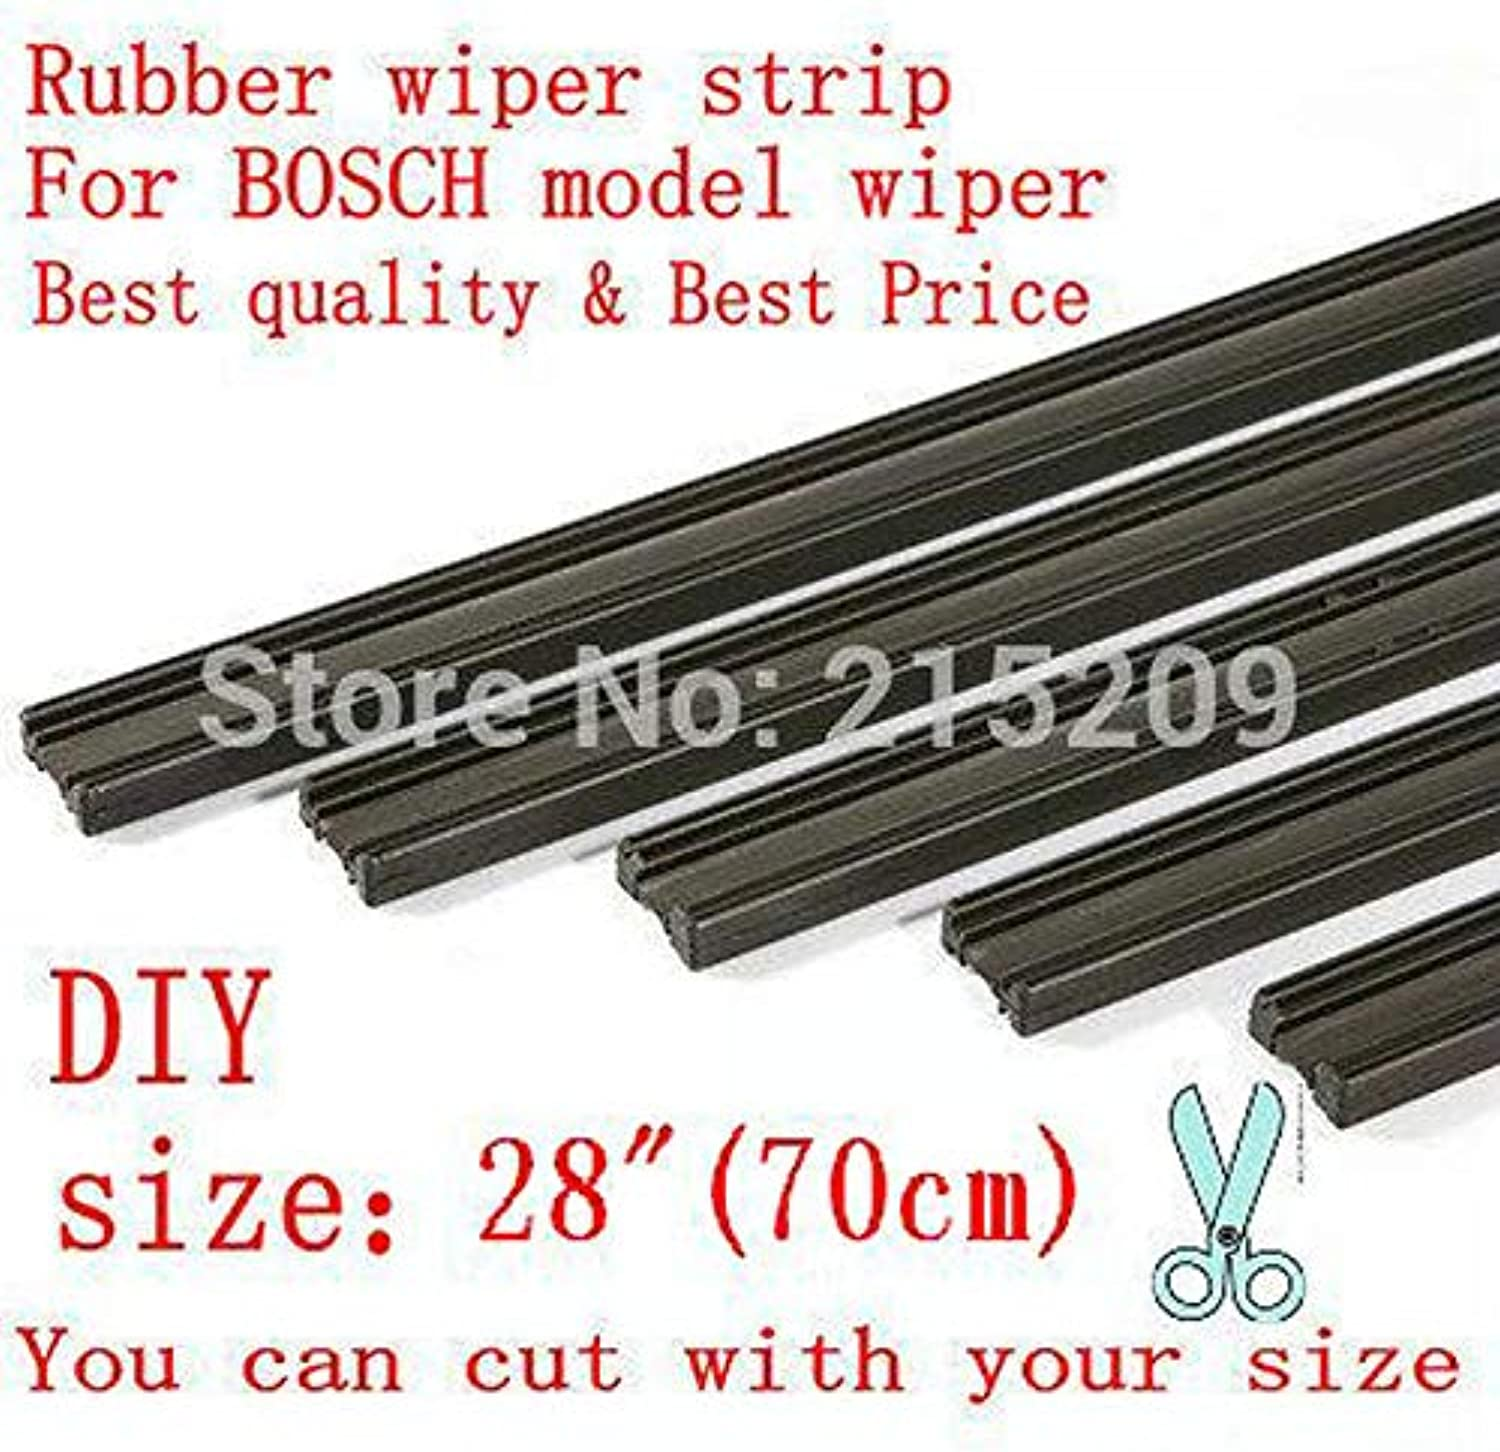 Wipers Auto Car Vehicle Insert Rubber Strip Wiper Blade (Refill) 6Mm Soft 28  700Mm 2Pcs Lot Car Accessories